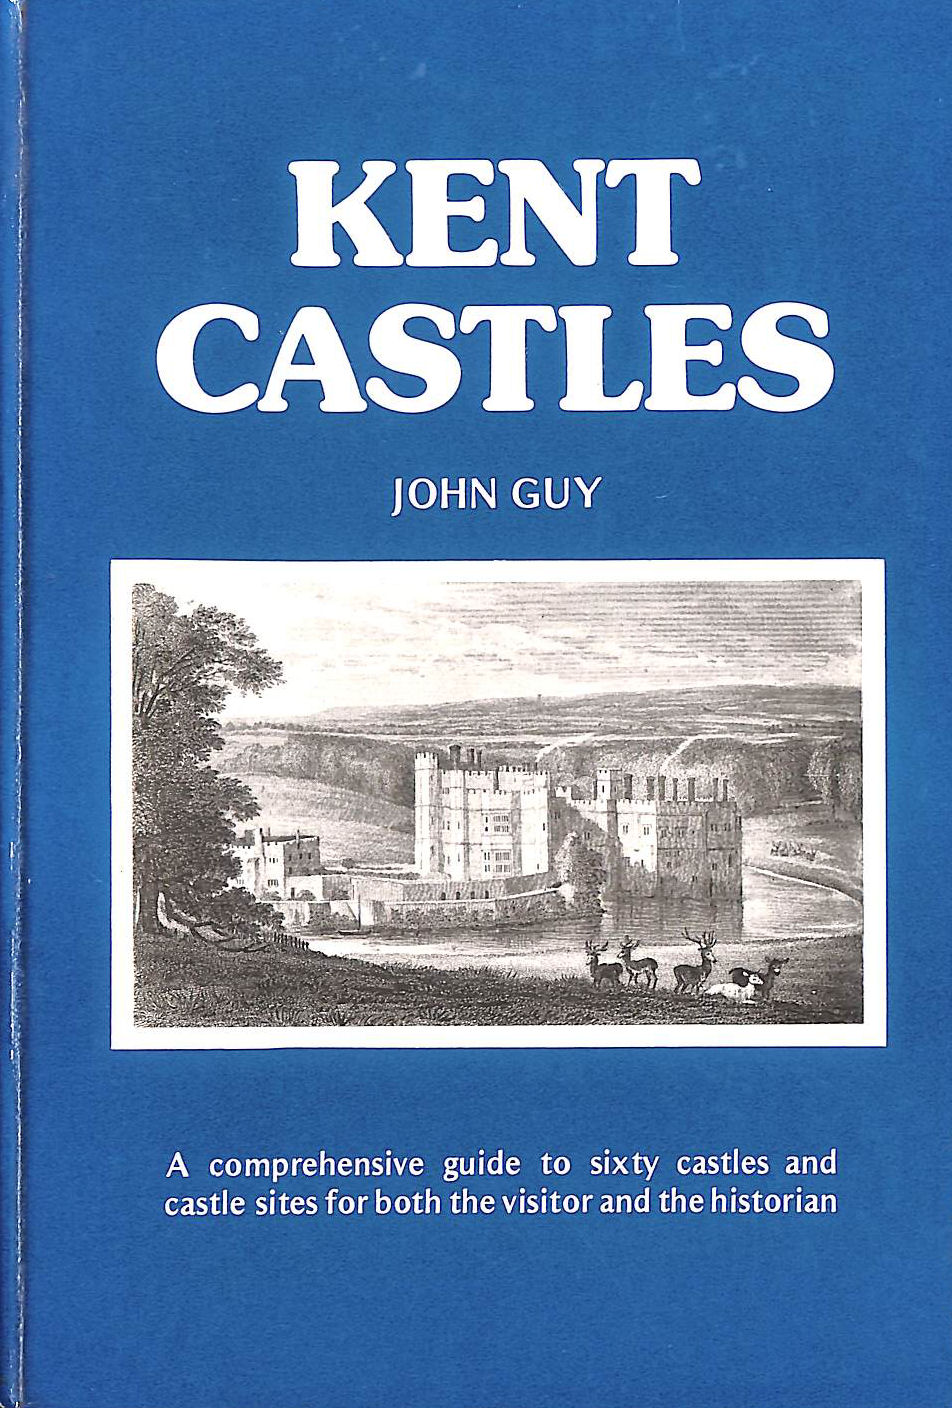 Image for Kent Castles: A Comprehensive Guide to Sixty Castles and Castle Sites for Visitor and Historian